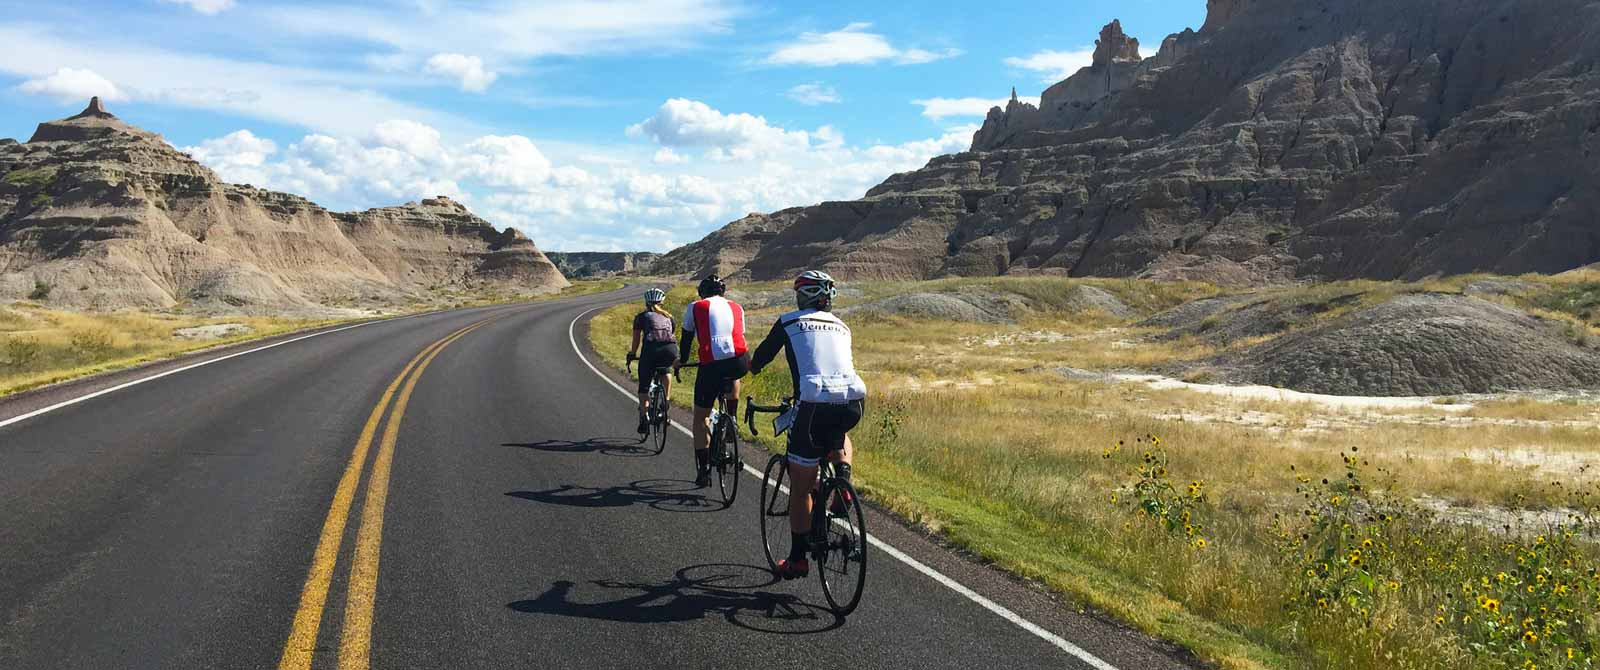 Glamp in the Badlands and Black Hills with Trek Travel and Under Canvas®